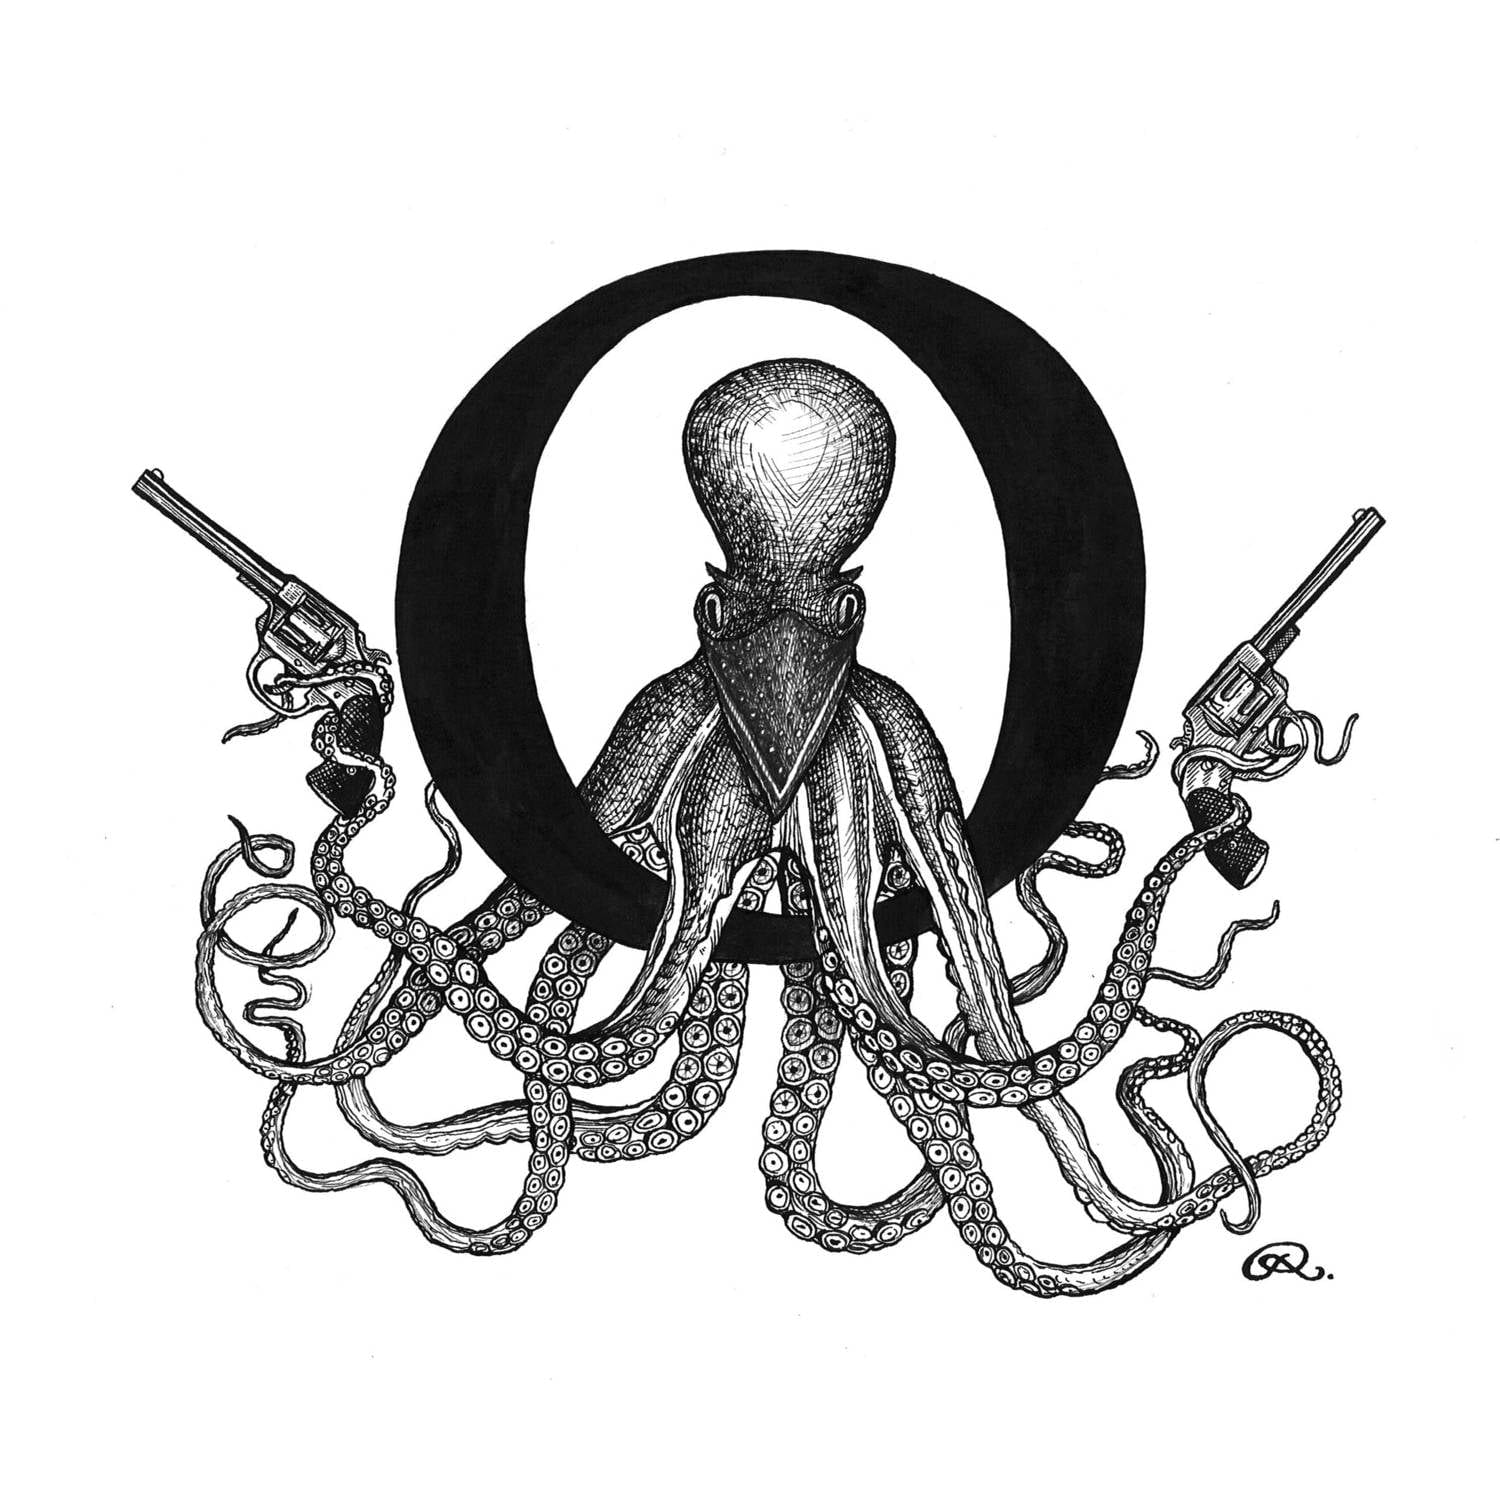 O - Outlaw Octopus Intricate Ink Print-0